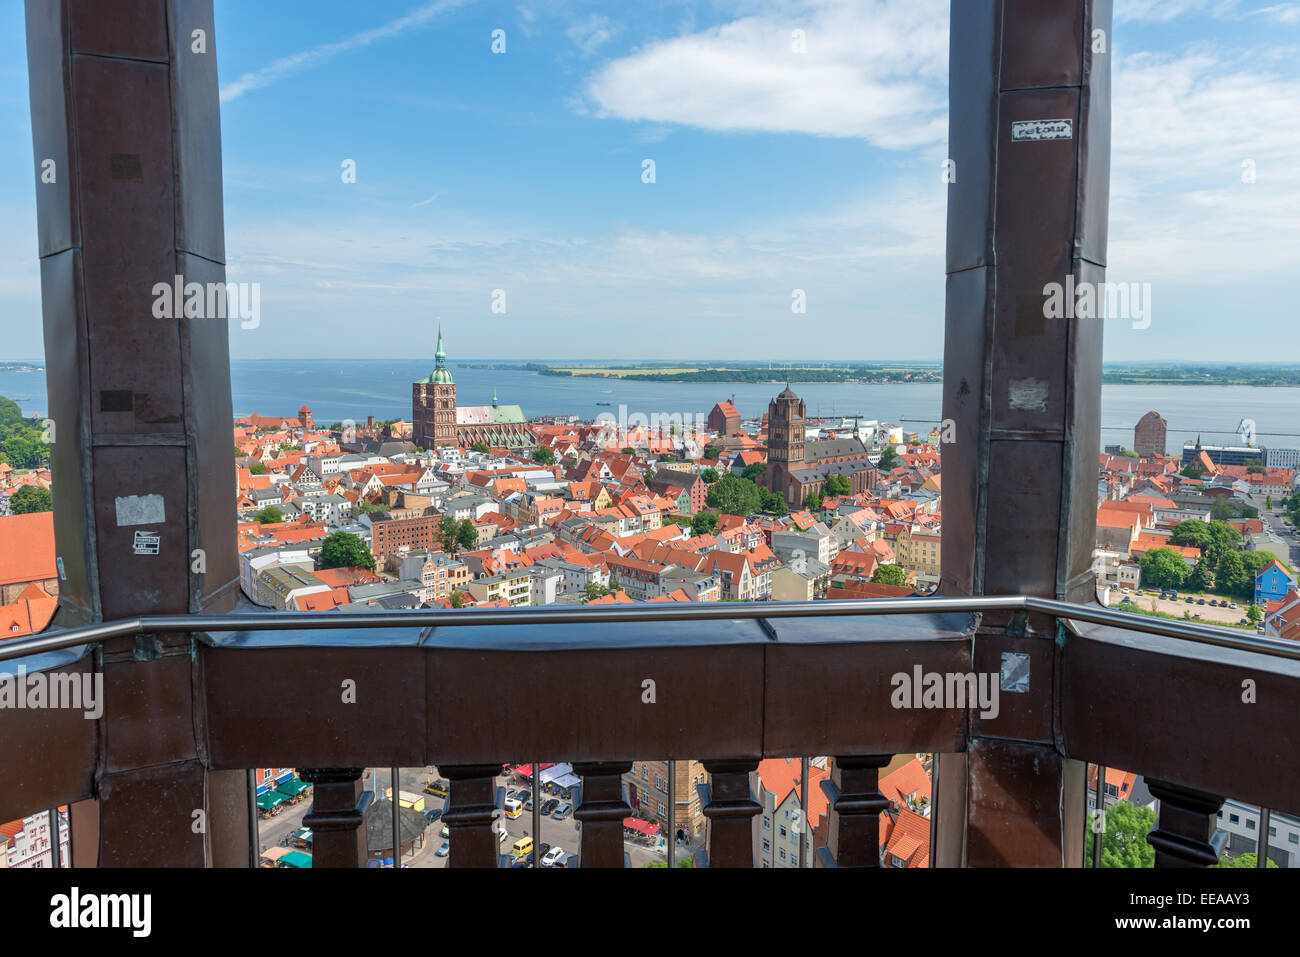 Rostock Hanseatic town, tourism, houses, sea, coast, blue sky, over the rooftops, as seen from the bell tower, look - Stock Image